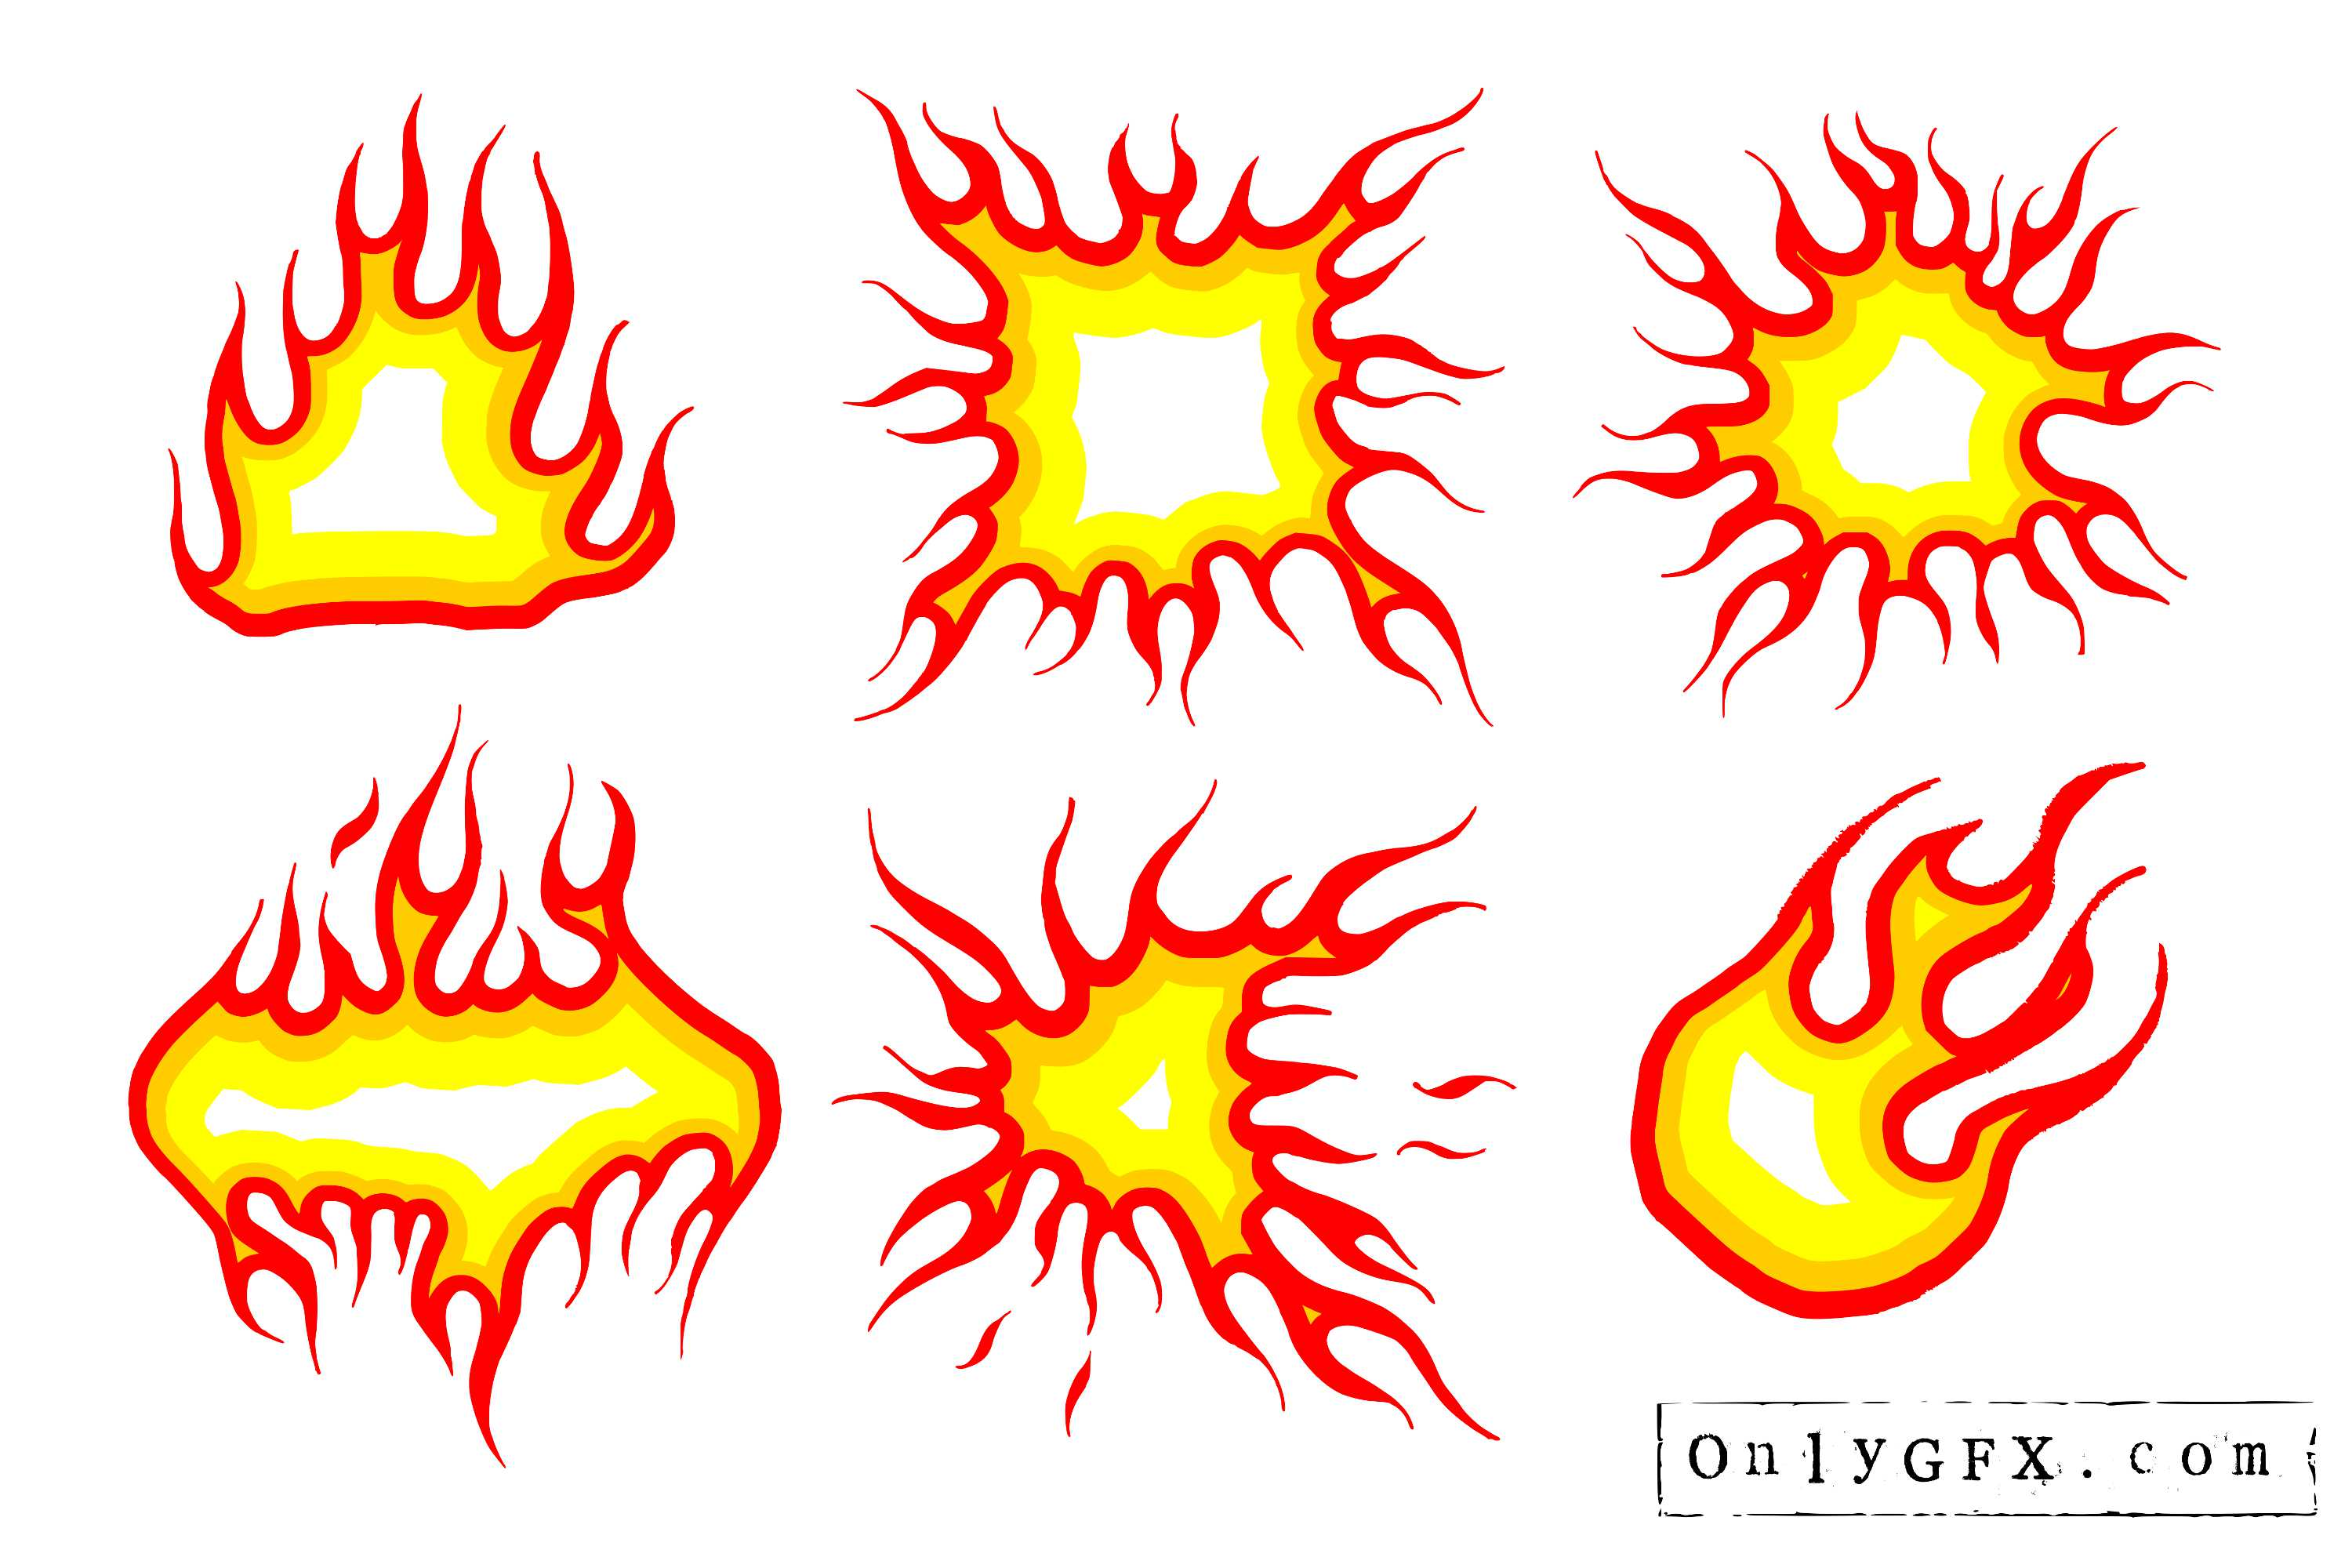 6-cartoon-fire-flame-elements-vector-cover.jpg